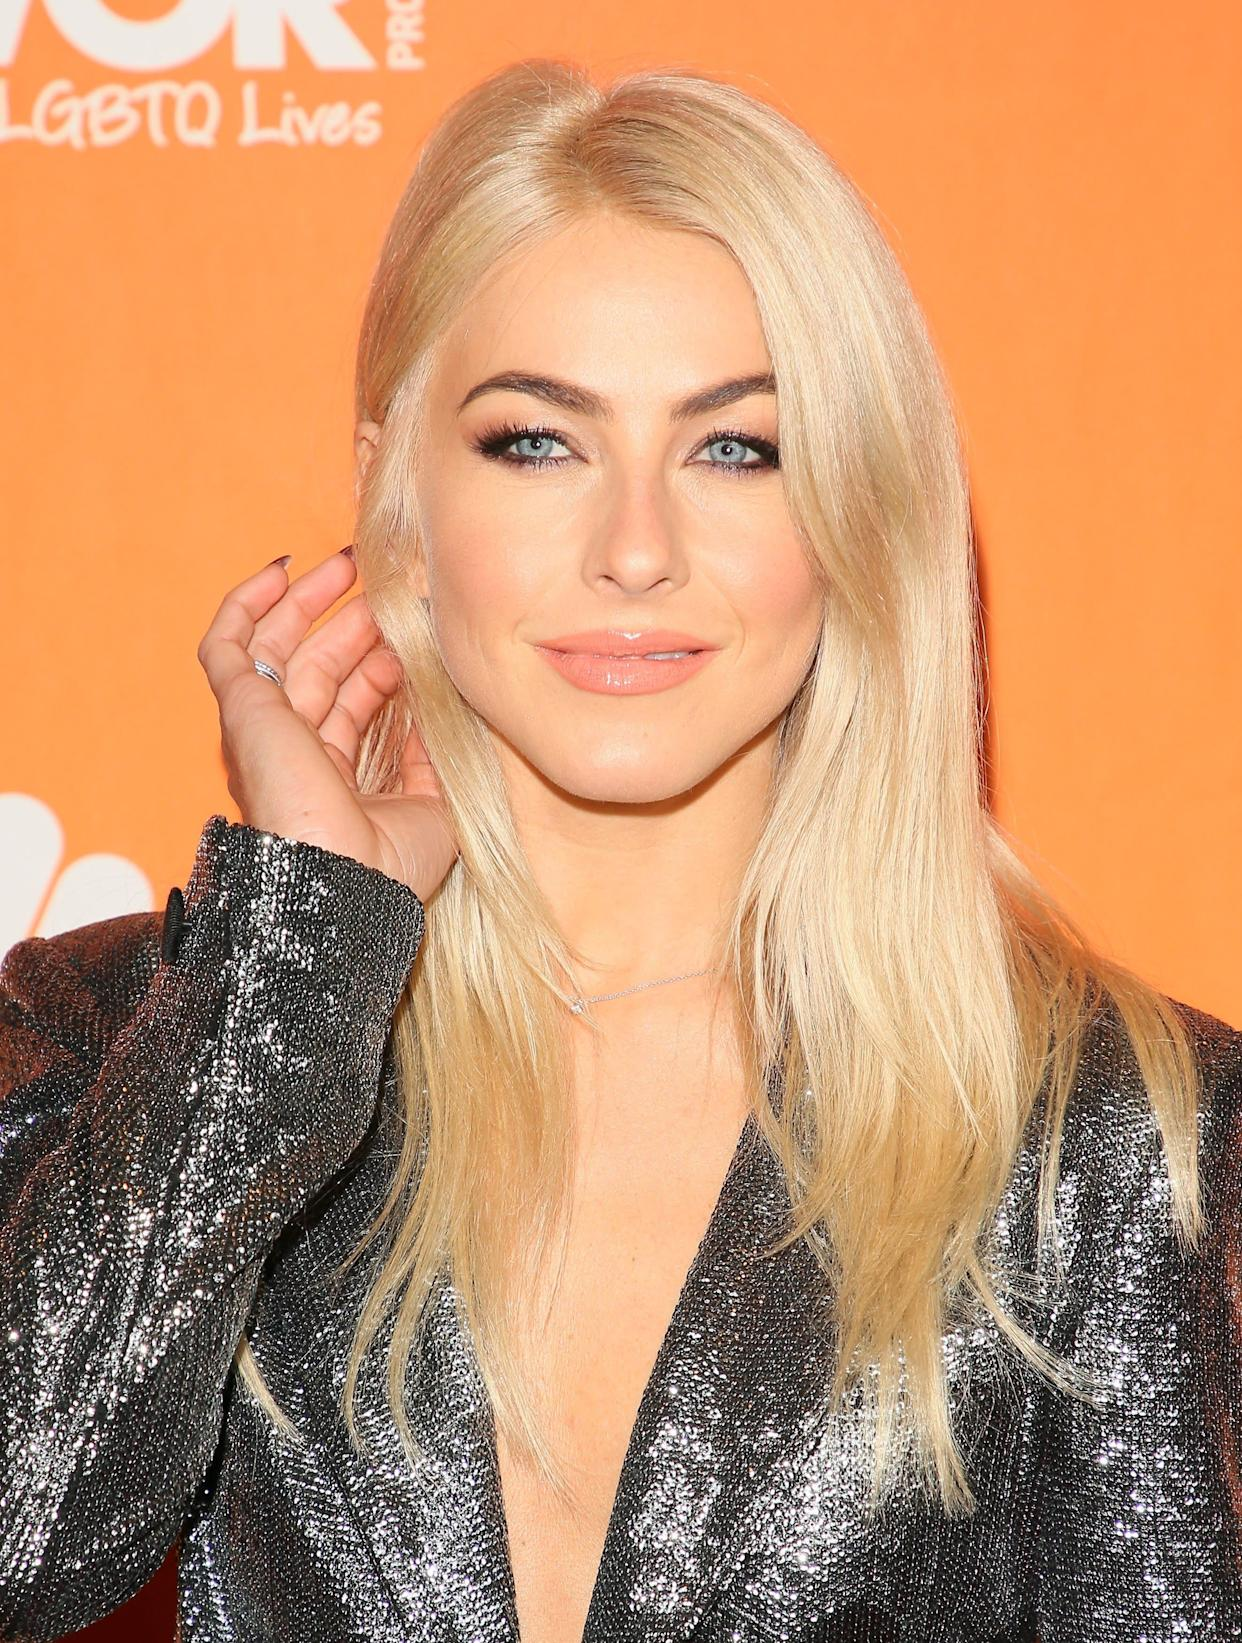 BEVERLY HILLS, CA - DECEMBER 03: Julianne Hough attends The Trevor Project's 2017 TrevorLIVE LA on December 3, 2017 in Beverly Hills, California. (Photo by JB Lacroix/ WireImage)